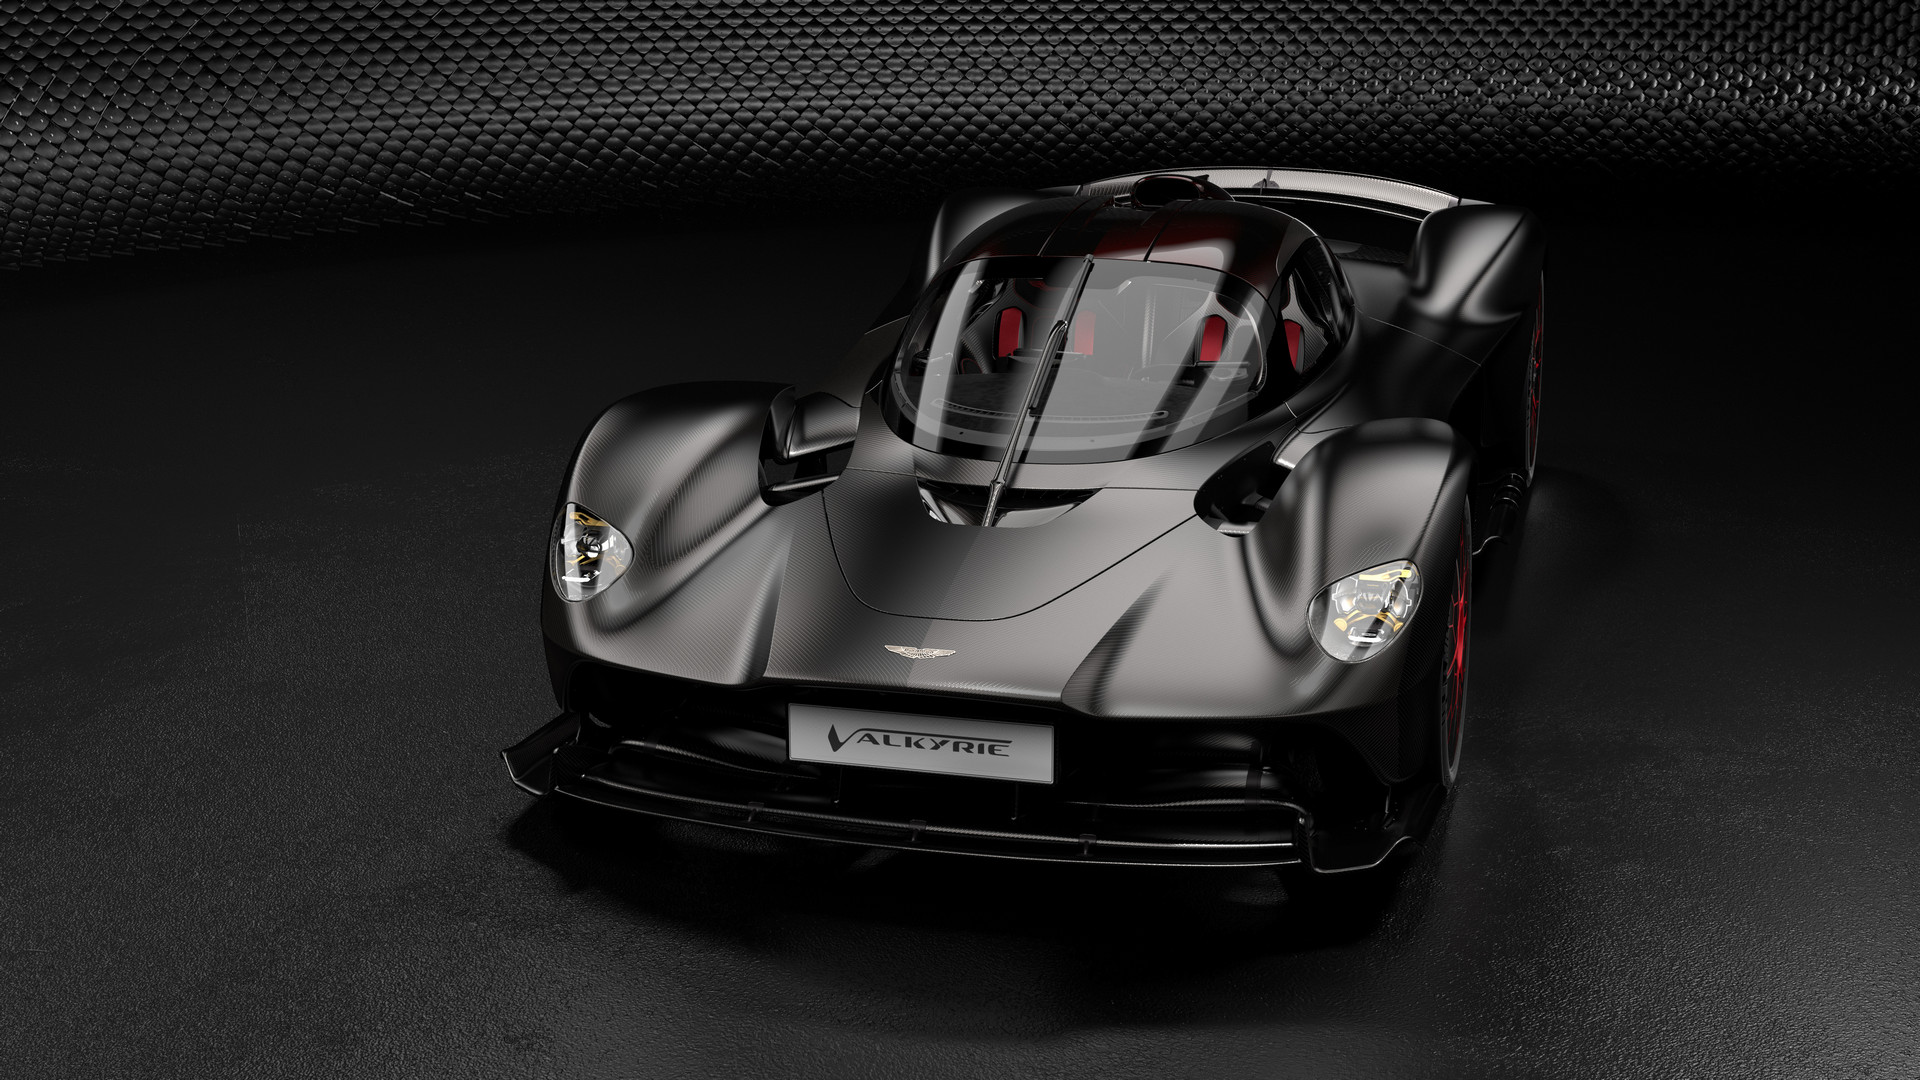 Aston Martin reveals AMR Track pack, Q options for the Valkyrie